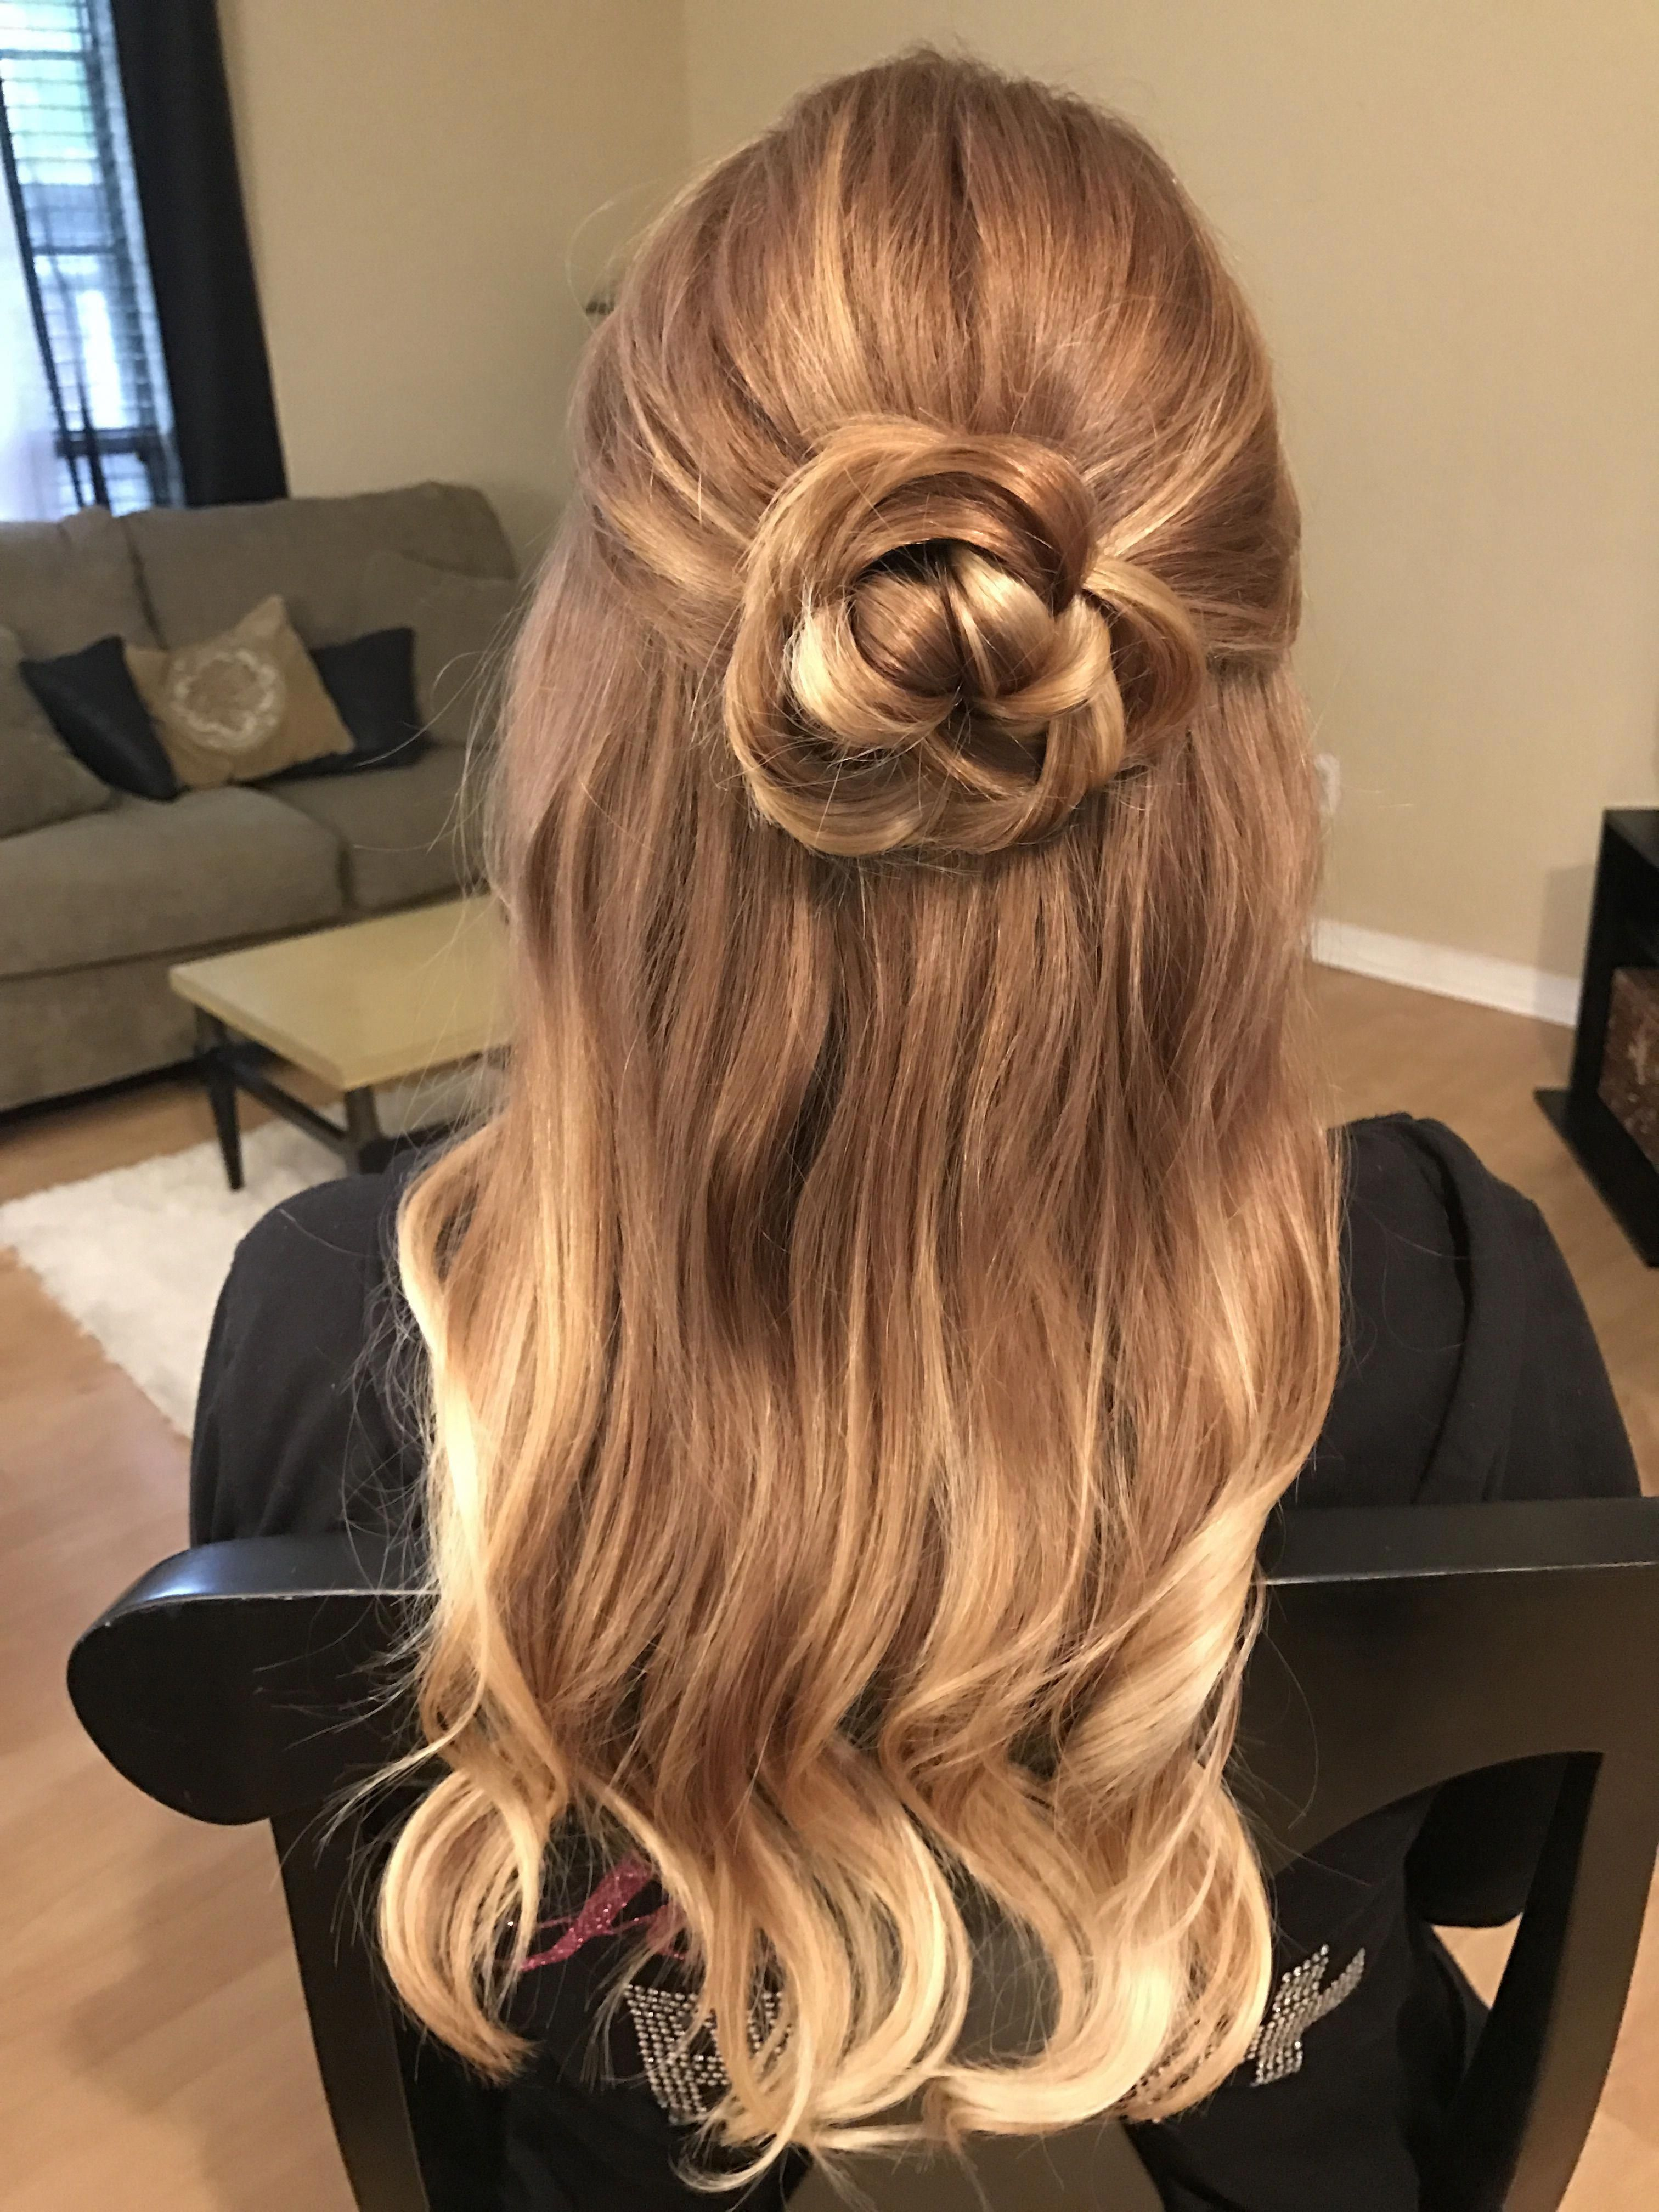 22 Perfectly Gorgeous Down Hairstyles For Prom Prom Hair Down Loose Curls Hairstyles Loose Hairstyles